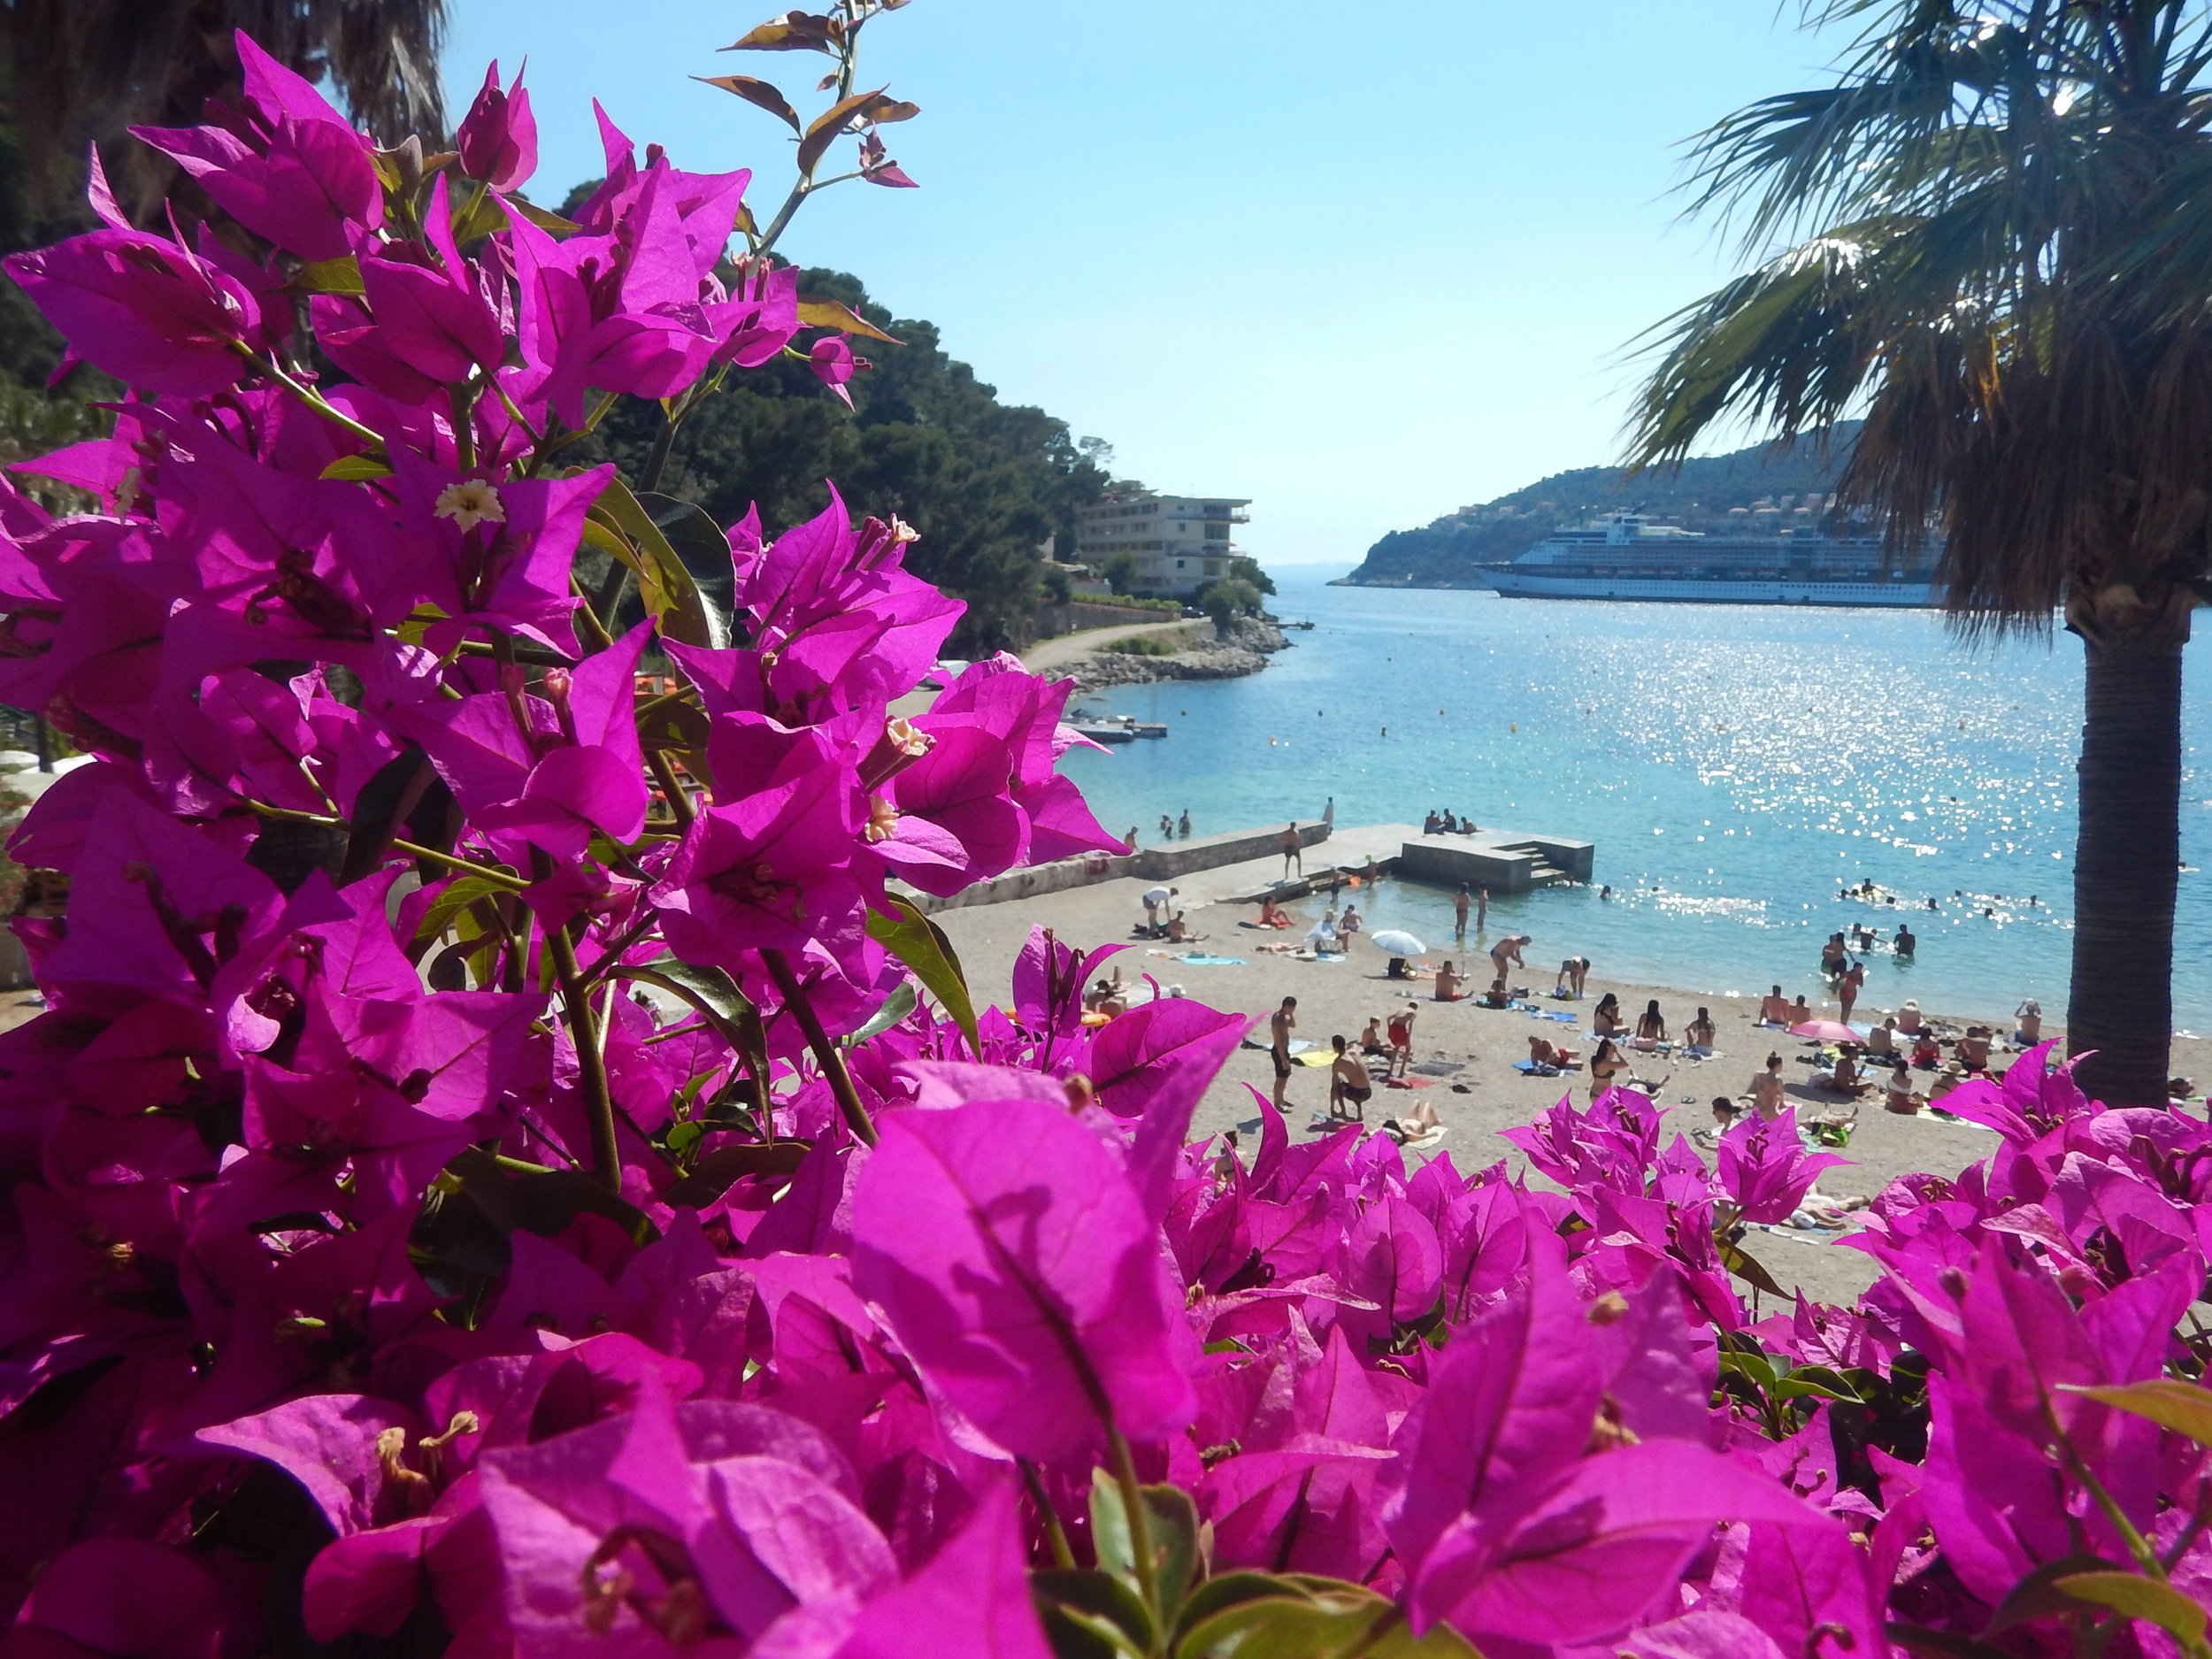 On this beautiful little cove just along from the Monte Carlo Marina.